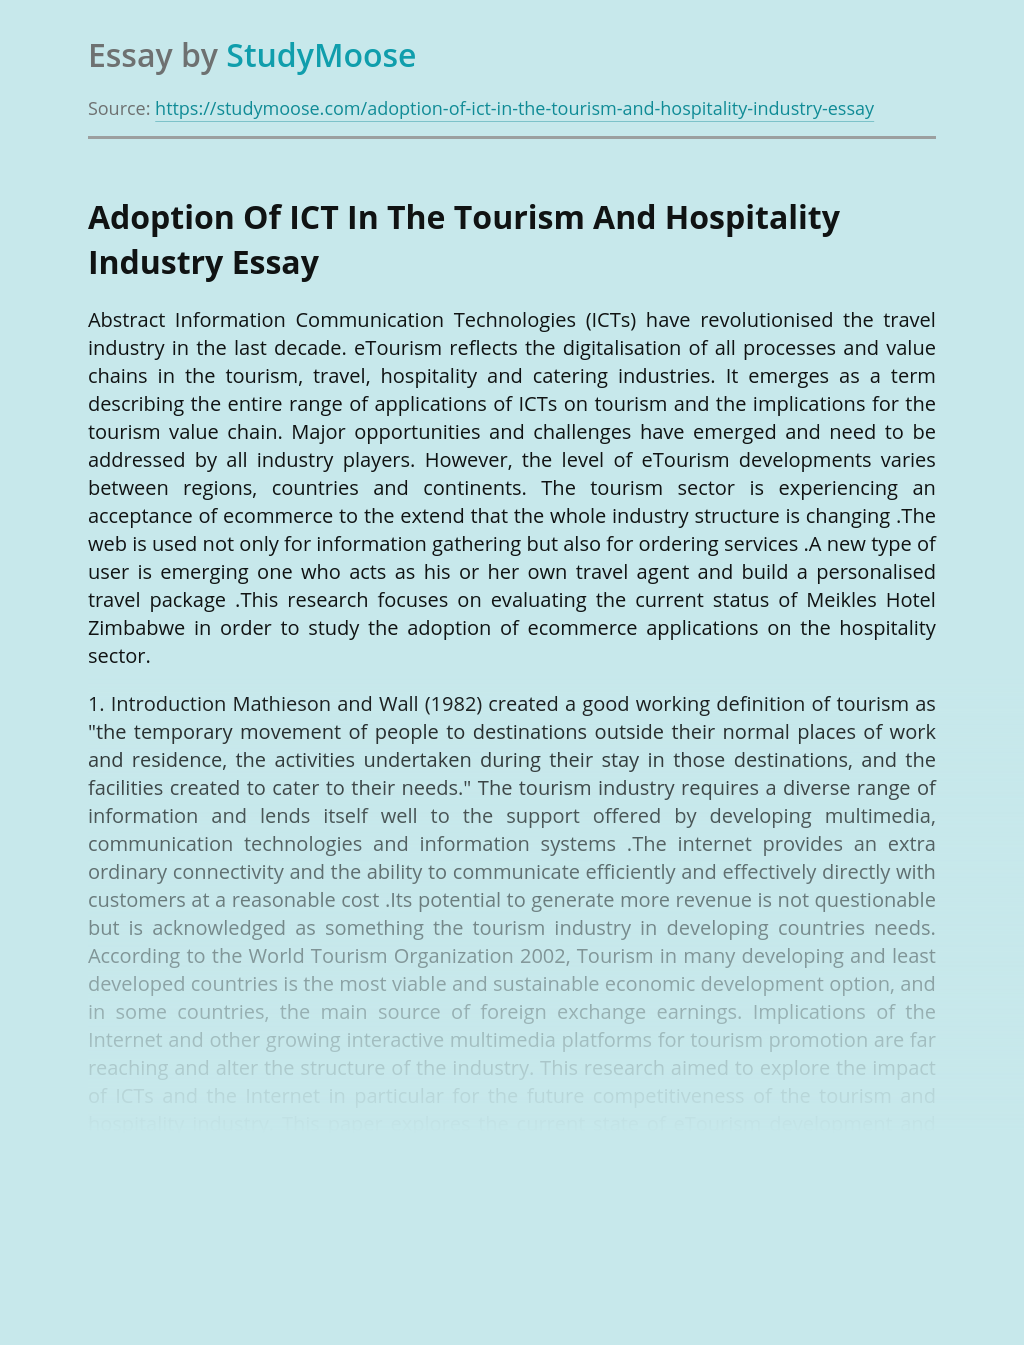 Adoption Of ICT In The Tourism And Hospitality Industry